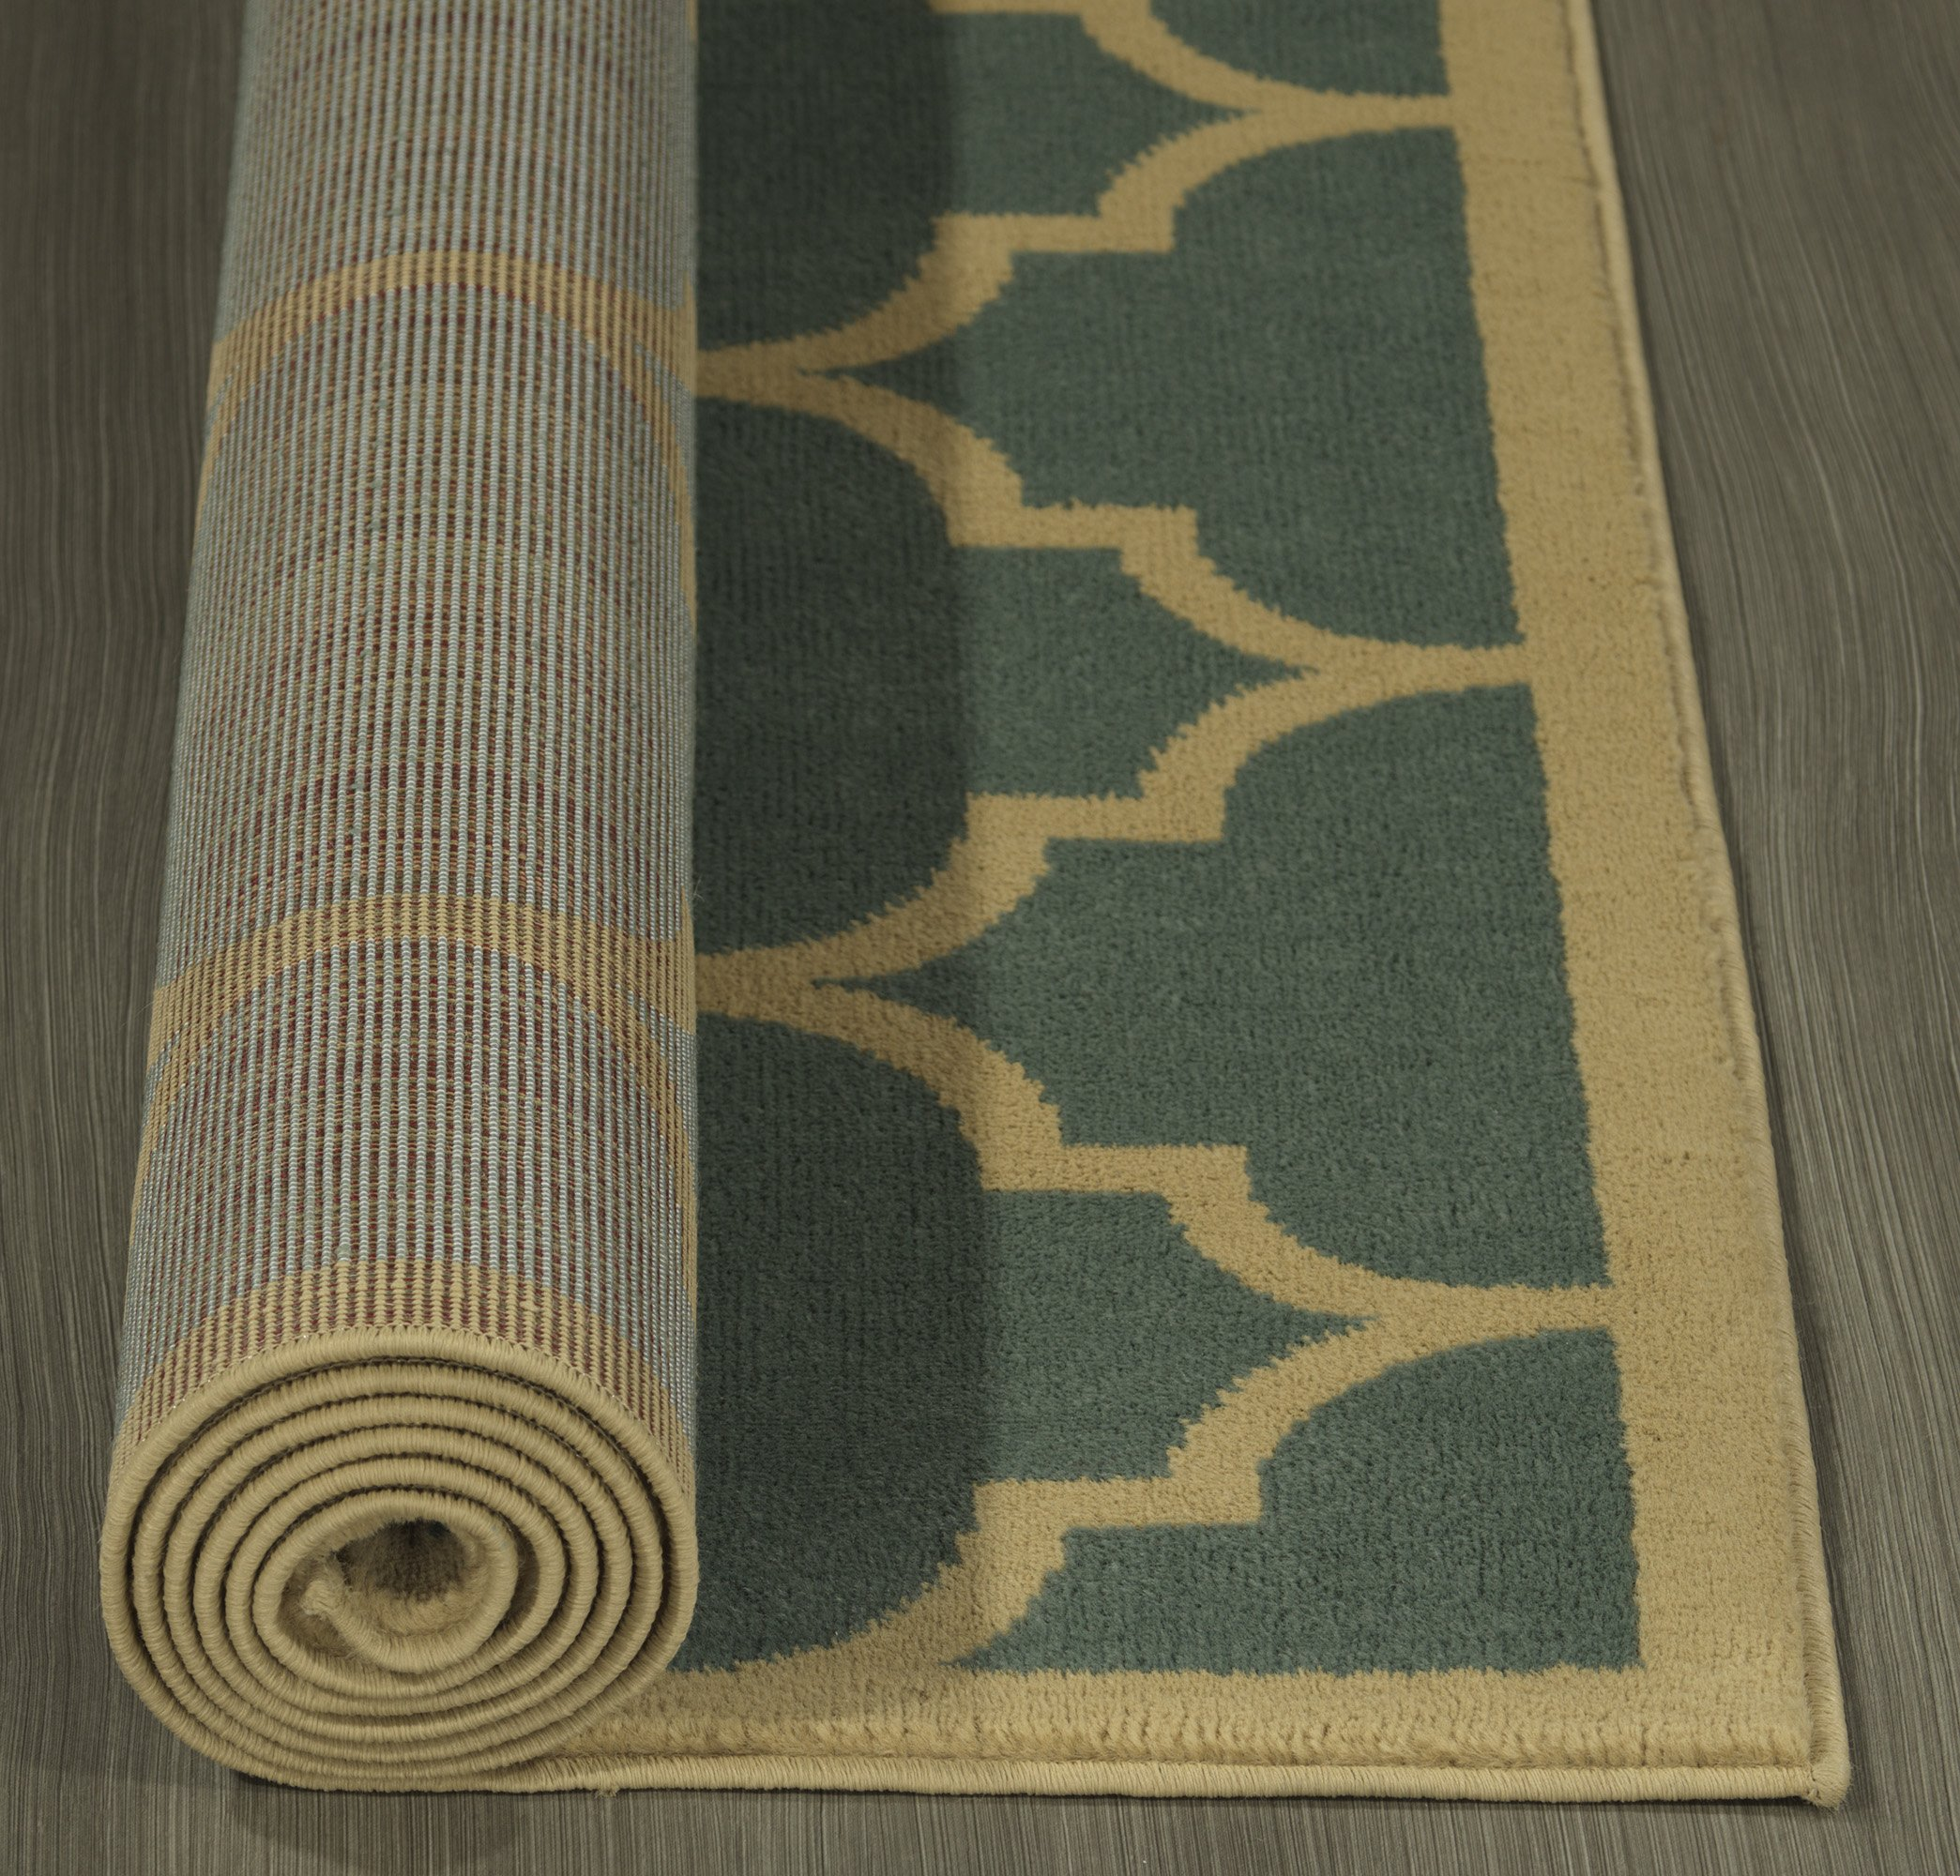 Sweet Home Stores Clifton Collection Moroccan Trellis Design Area Rug, 7'10'' X 9'10'', Seafoam by Sweet Home Stores (Image #5)